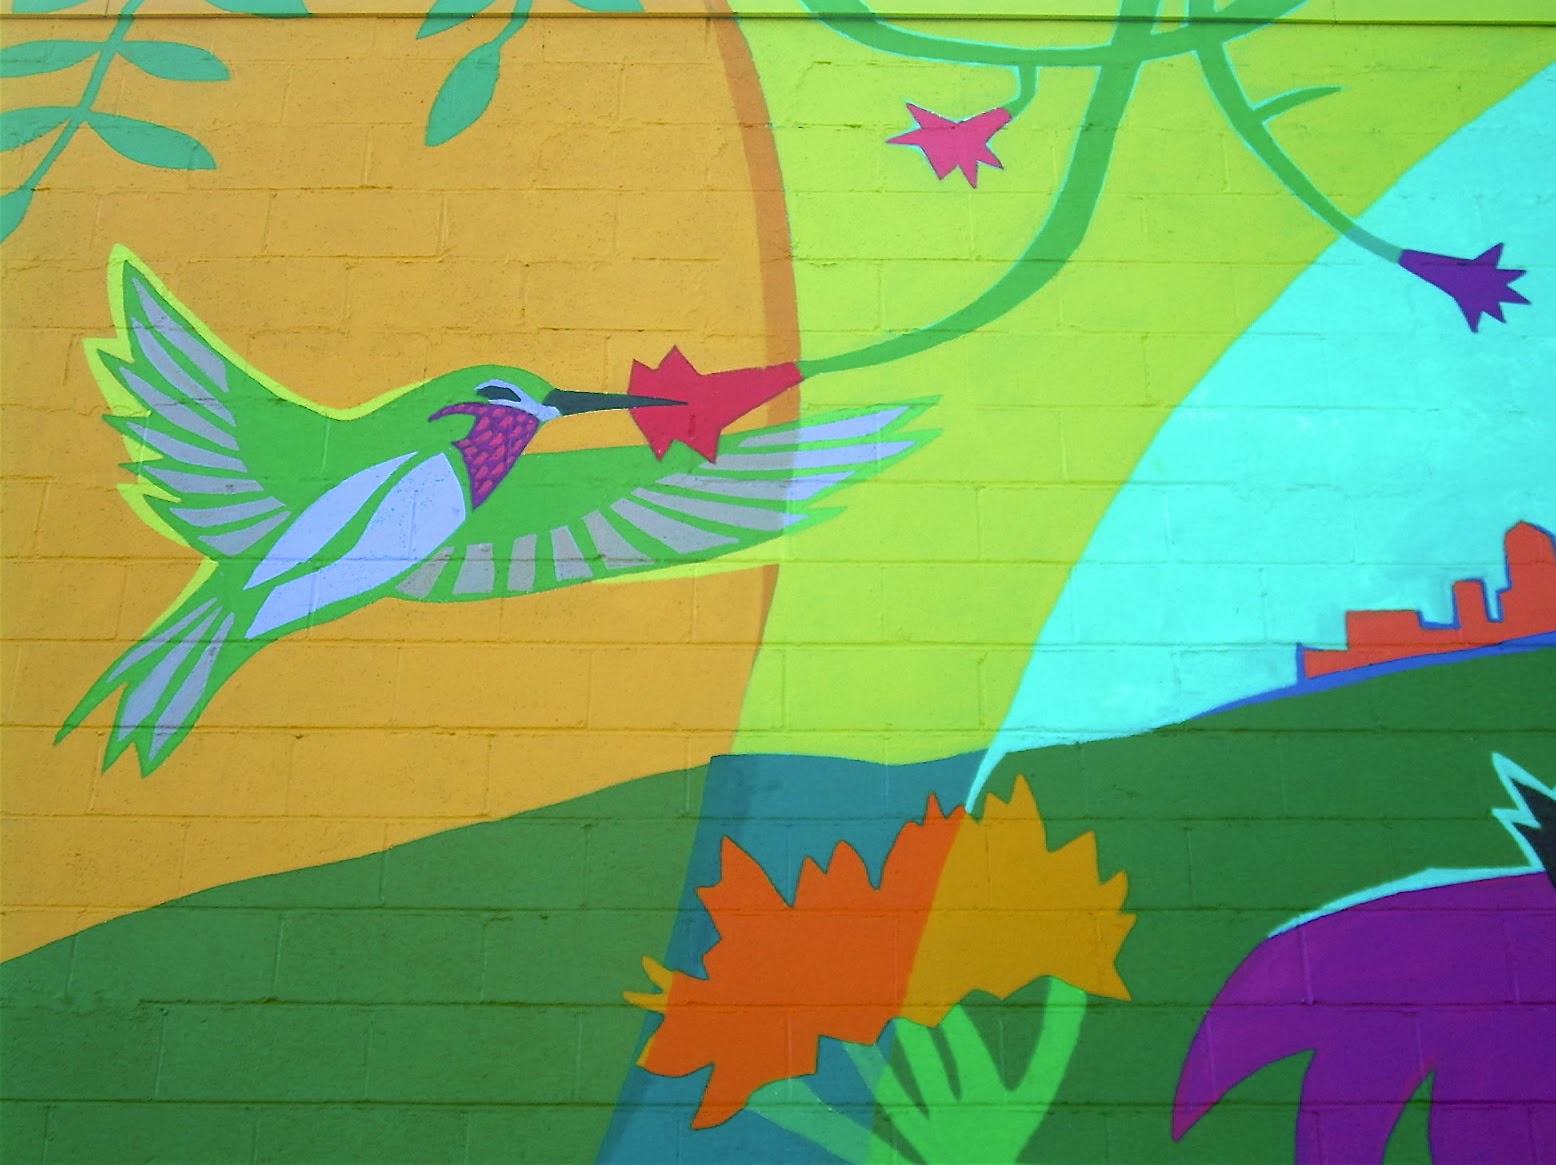 Help save the Pollinators mural!